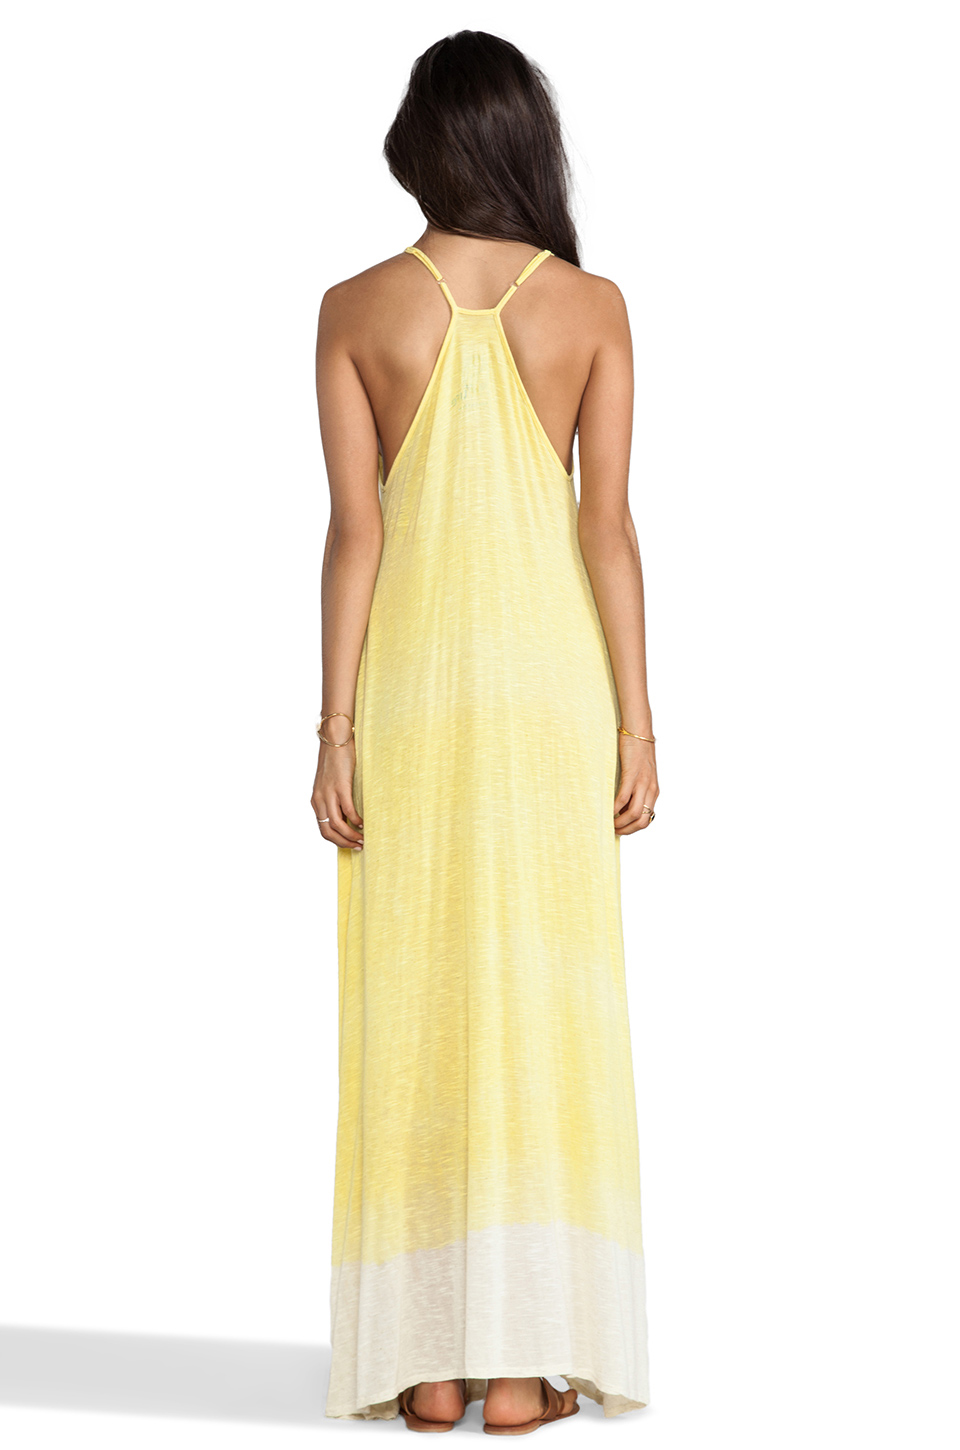 Blue Life Pharoah Long Dress in Sunfade